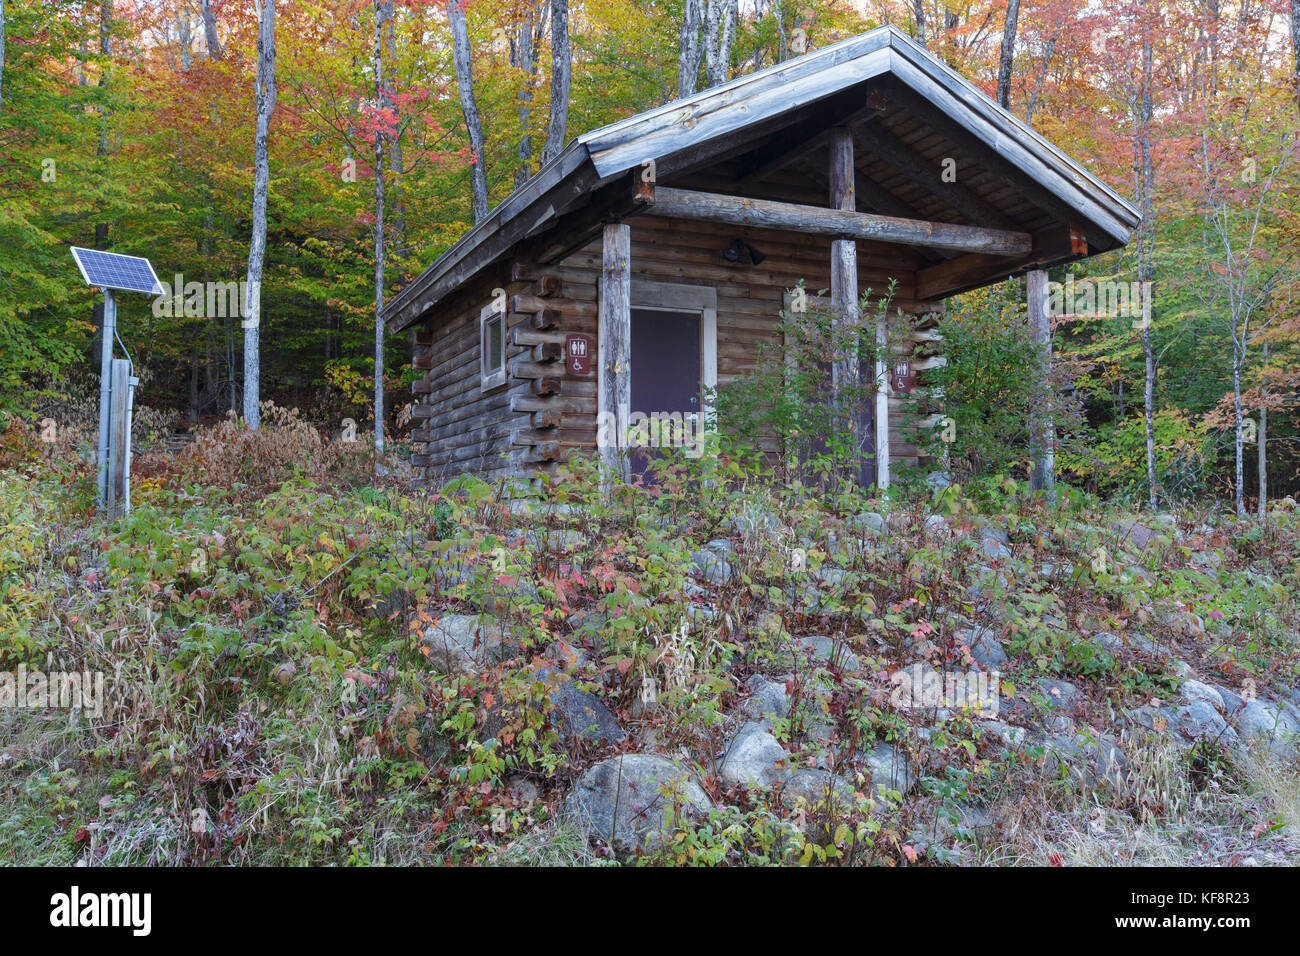 Log Cabin Bathrooms At The Discover Trail Trailhead Along Stock Photo Alamy